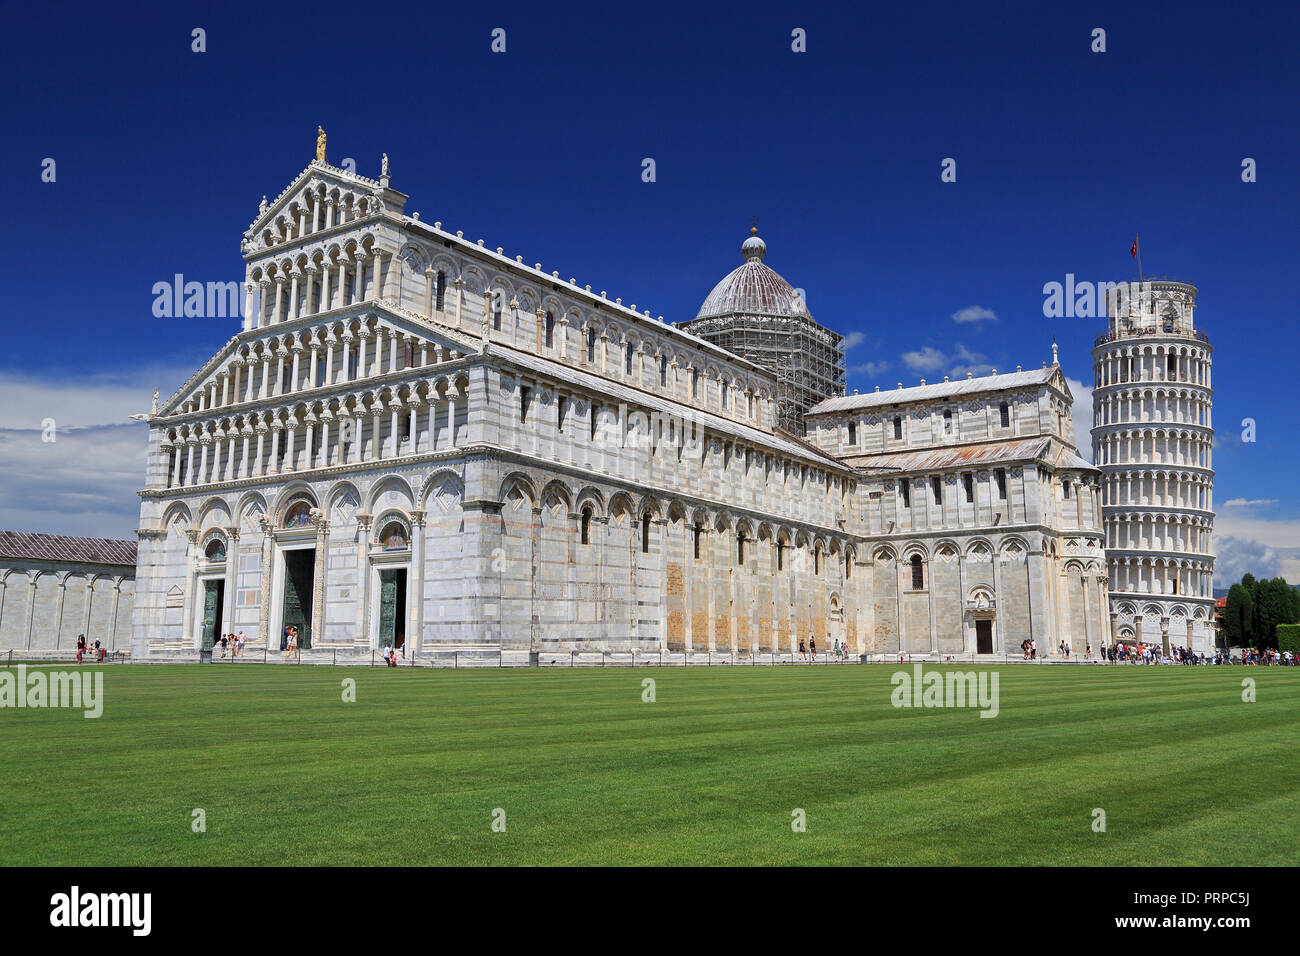 Piazza del Duomo in Pisa, basilica and leaning tower, Italy Stock Photo